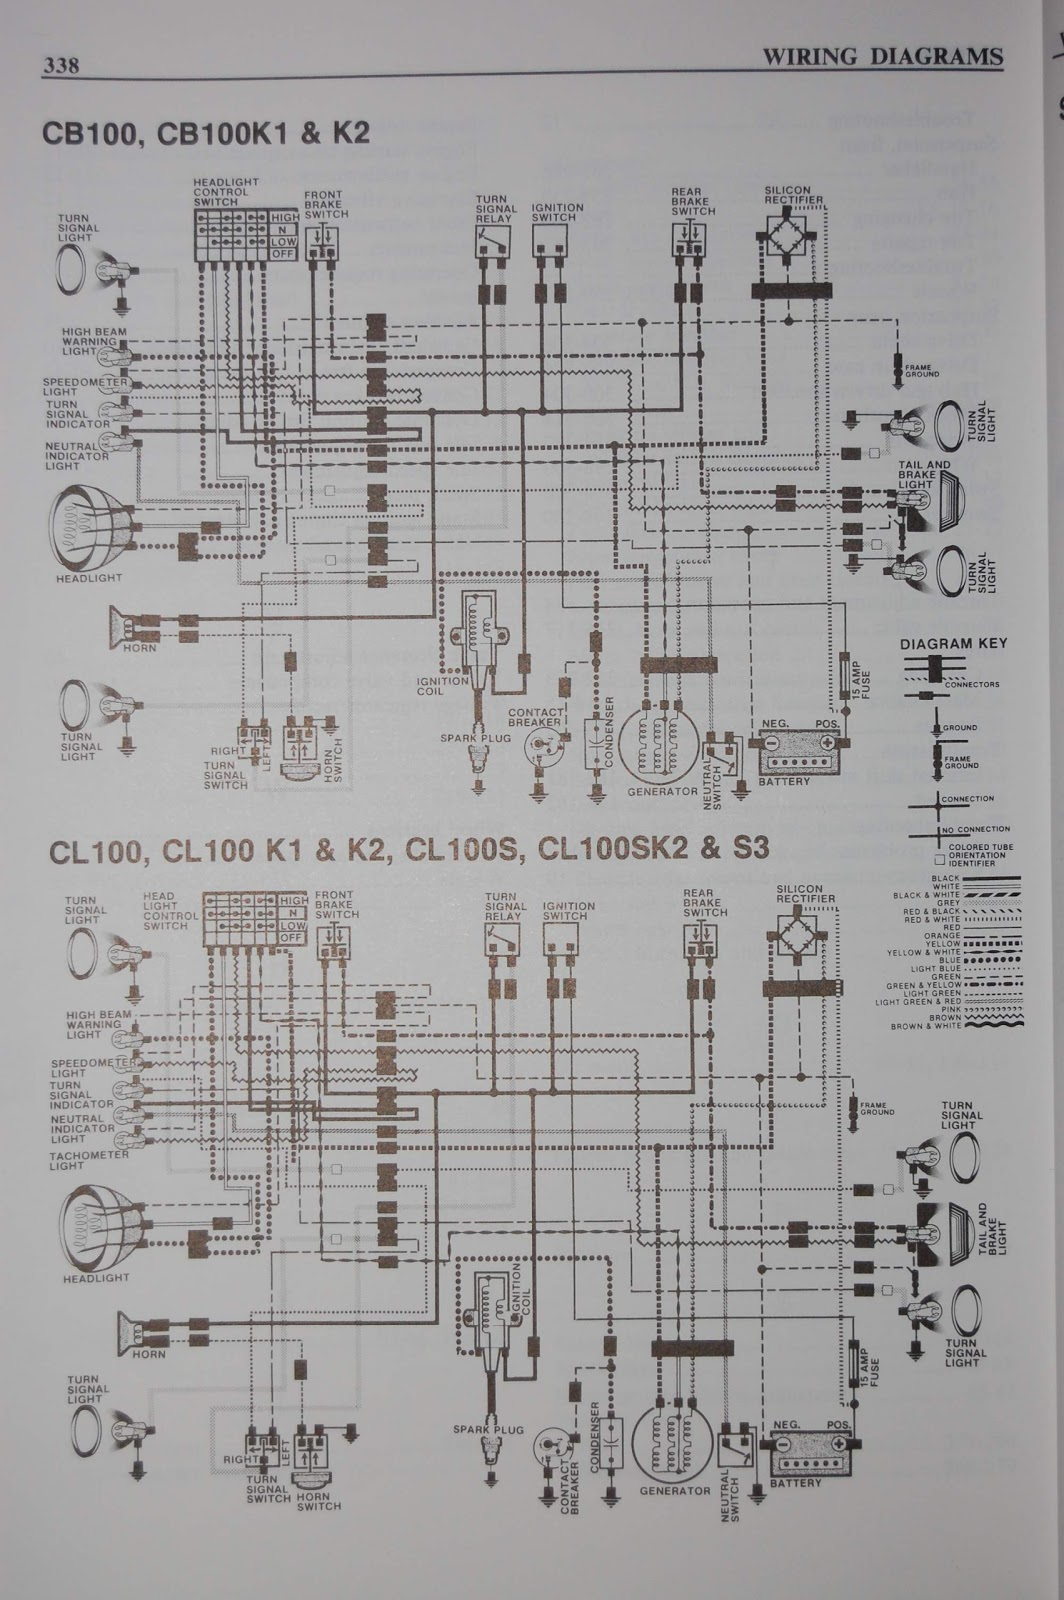 1980 honda express wiring diagram 1980 image honda c90 cdi wiring diagram honda wiring diagrams on 1980 honda express wiring diagram